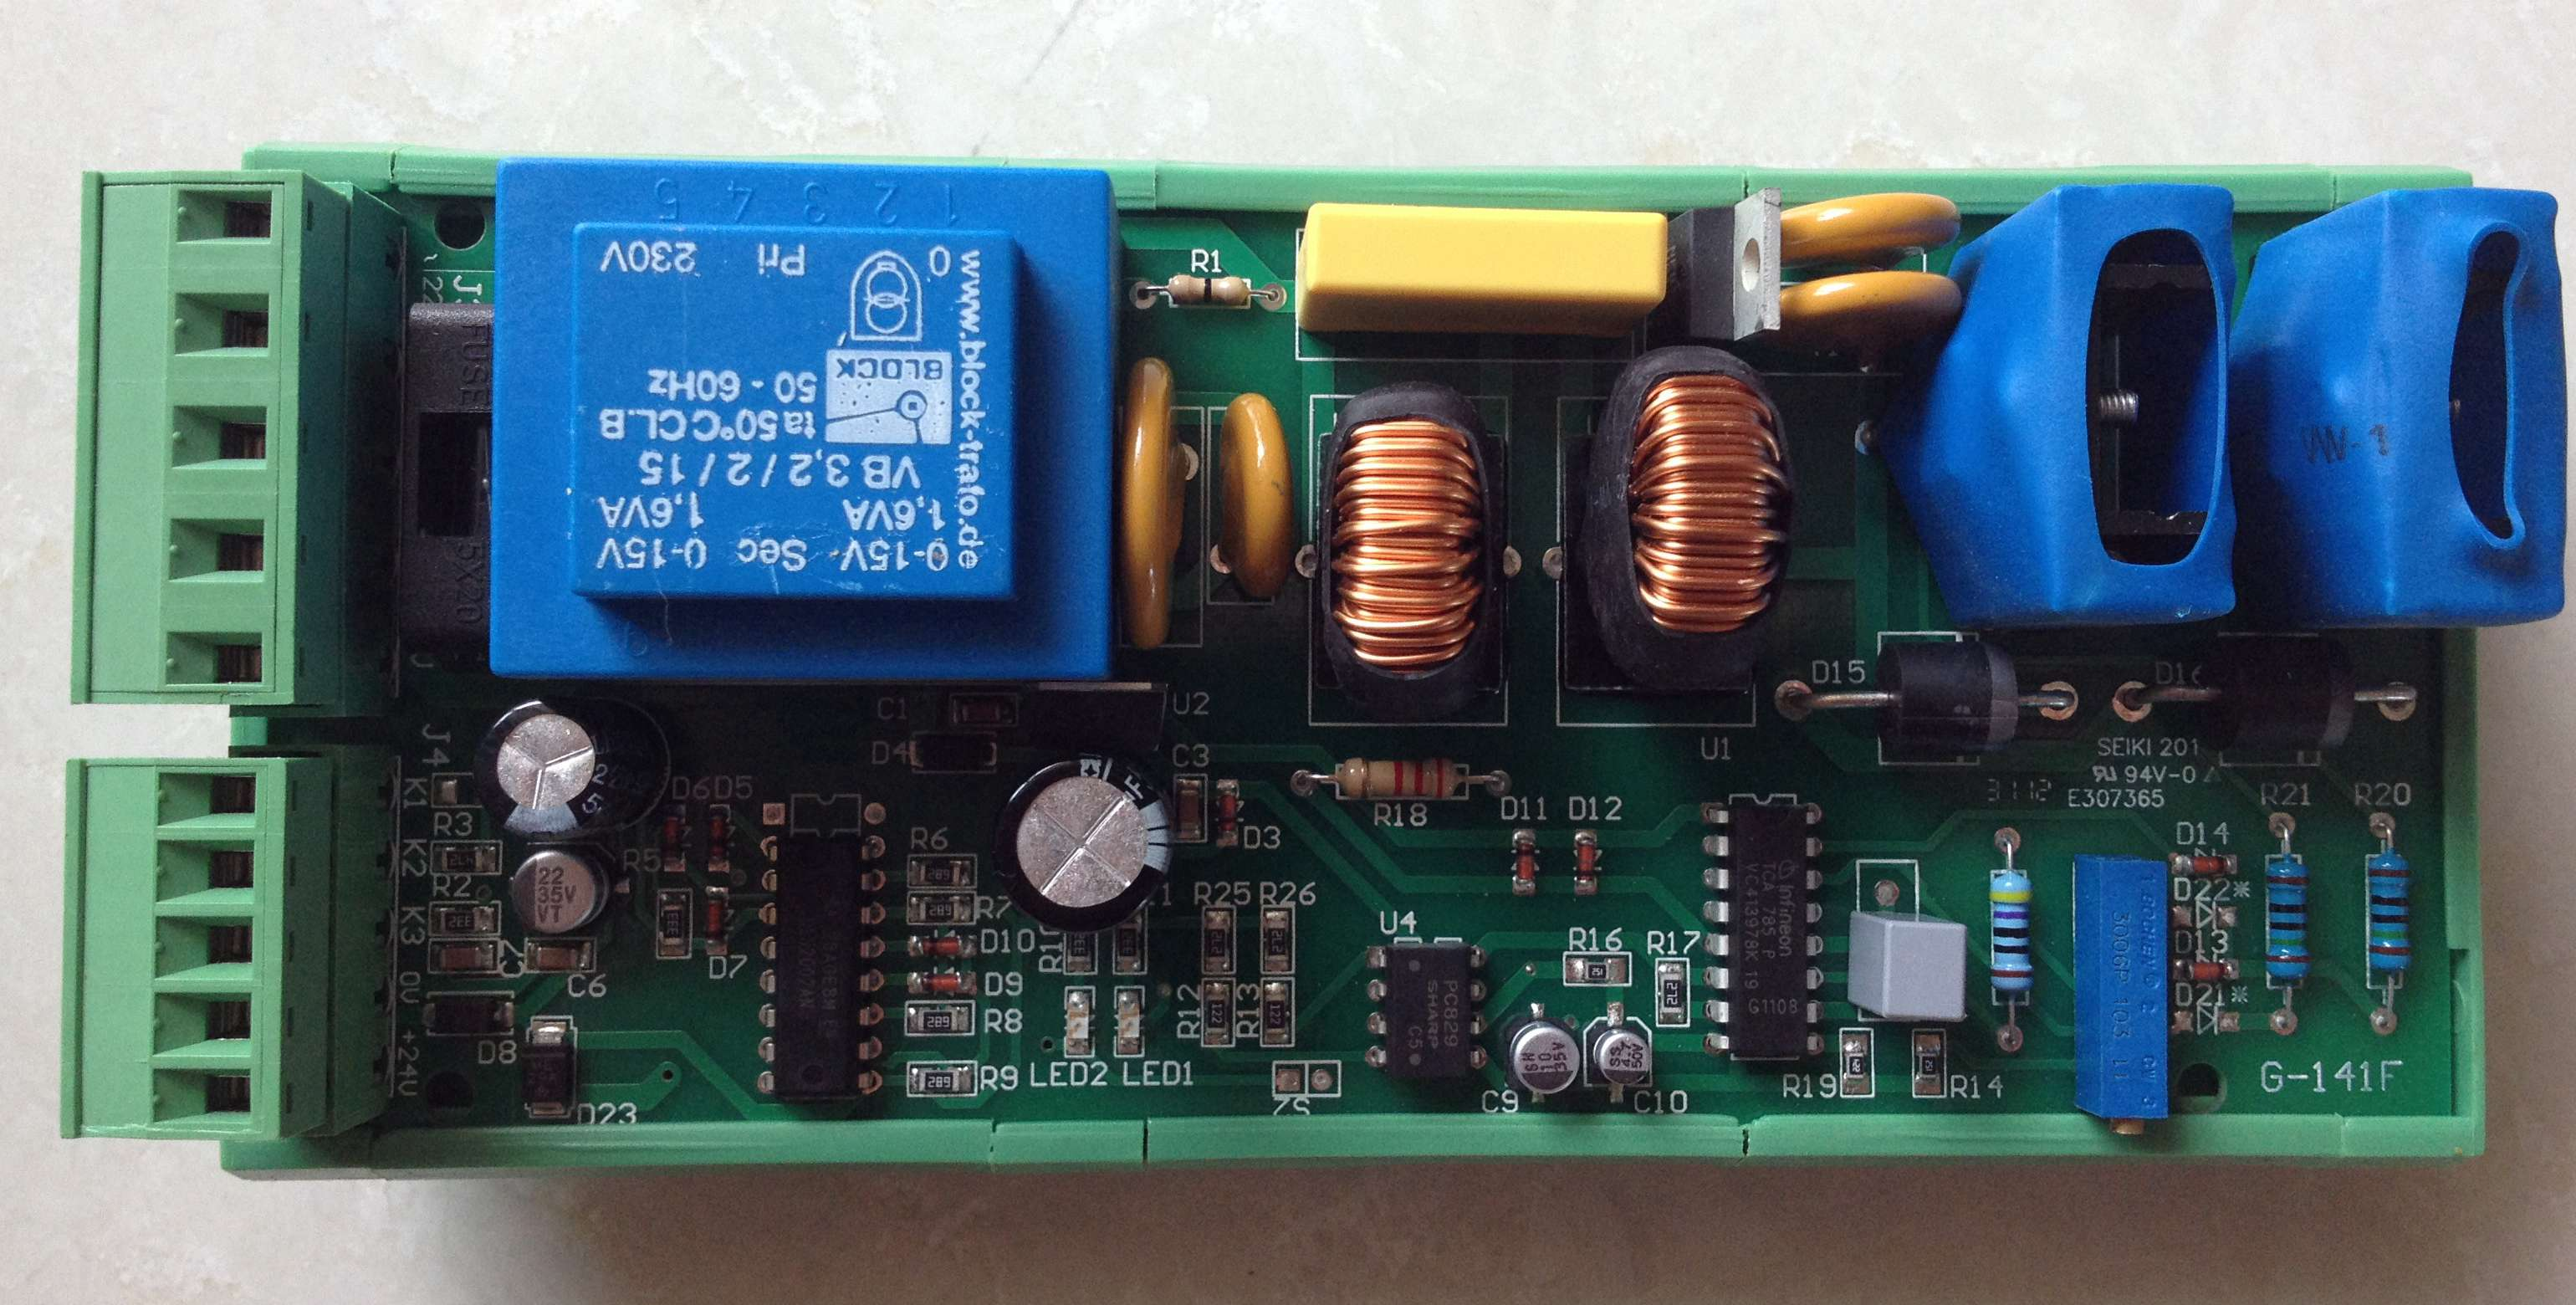 Conscientious Thyssen Elevator Parts Mb2.2/thyssen Brake Brake Controller Board G-141 Smoothing Circulation And Stopping Pains